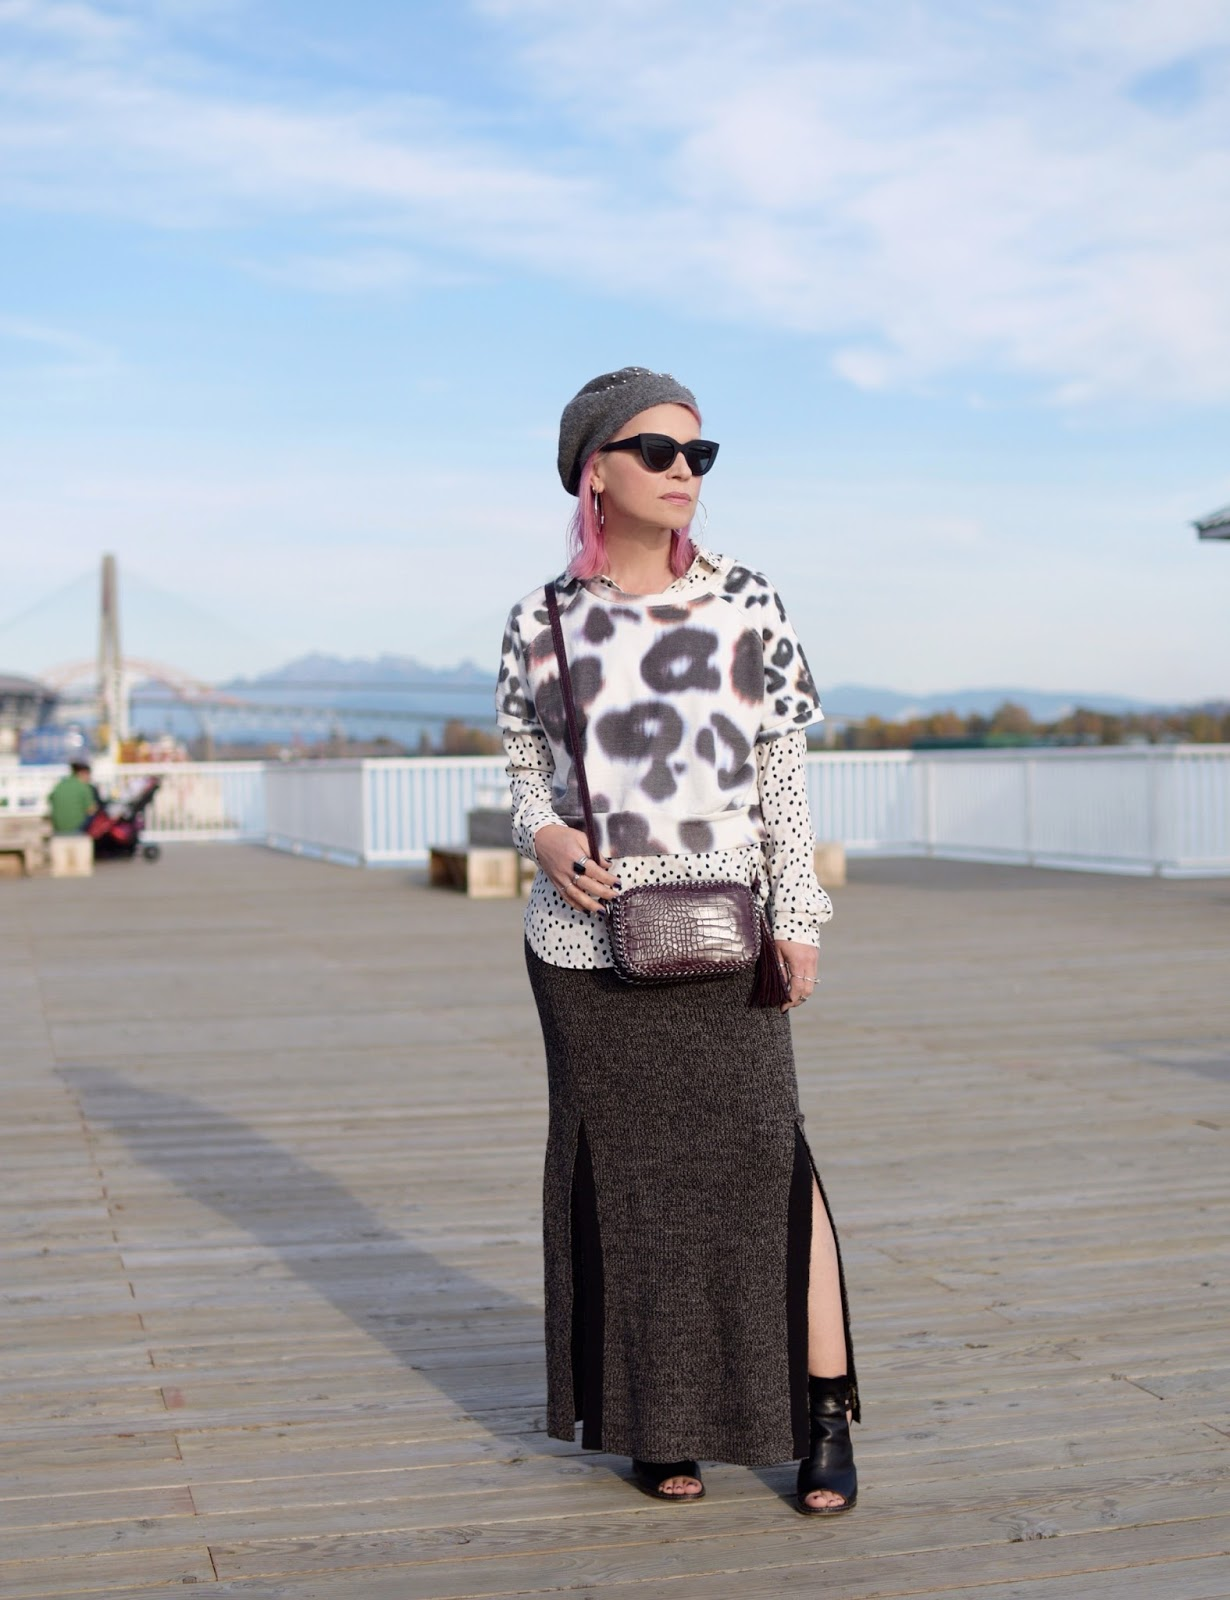 Monika Faulkner outfit inspiration - polka-dot blouse layered under a sweatshirt, knit maxi-skirt, and a beret